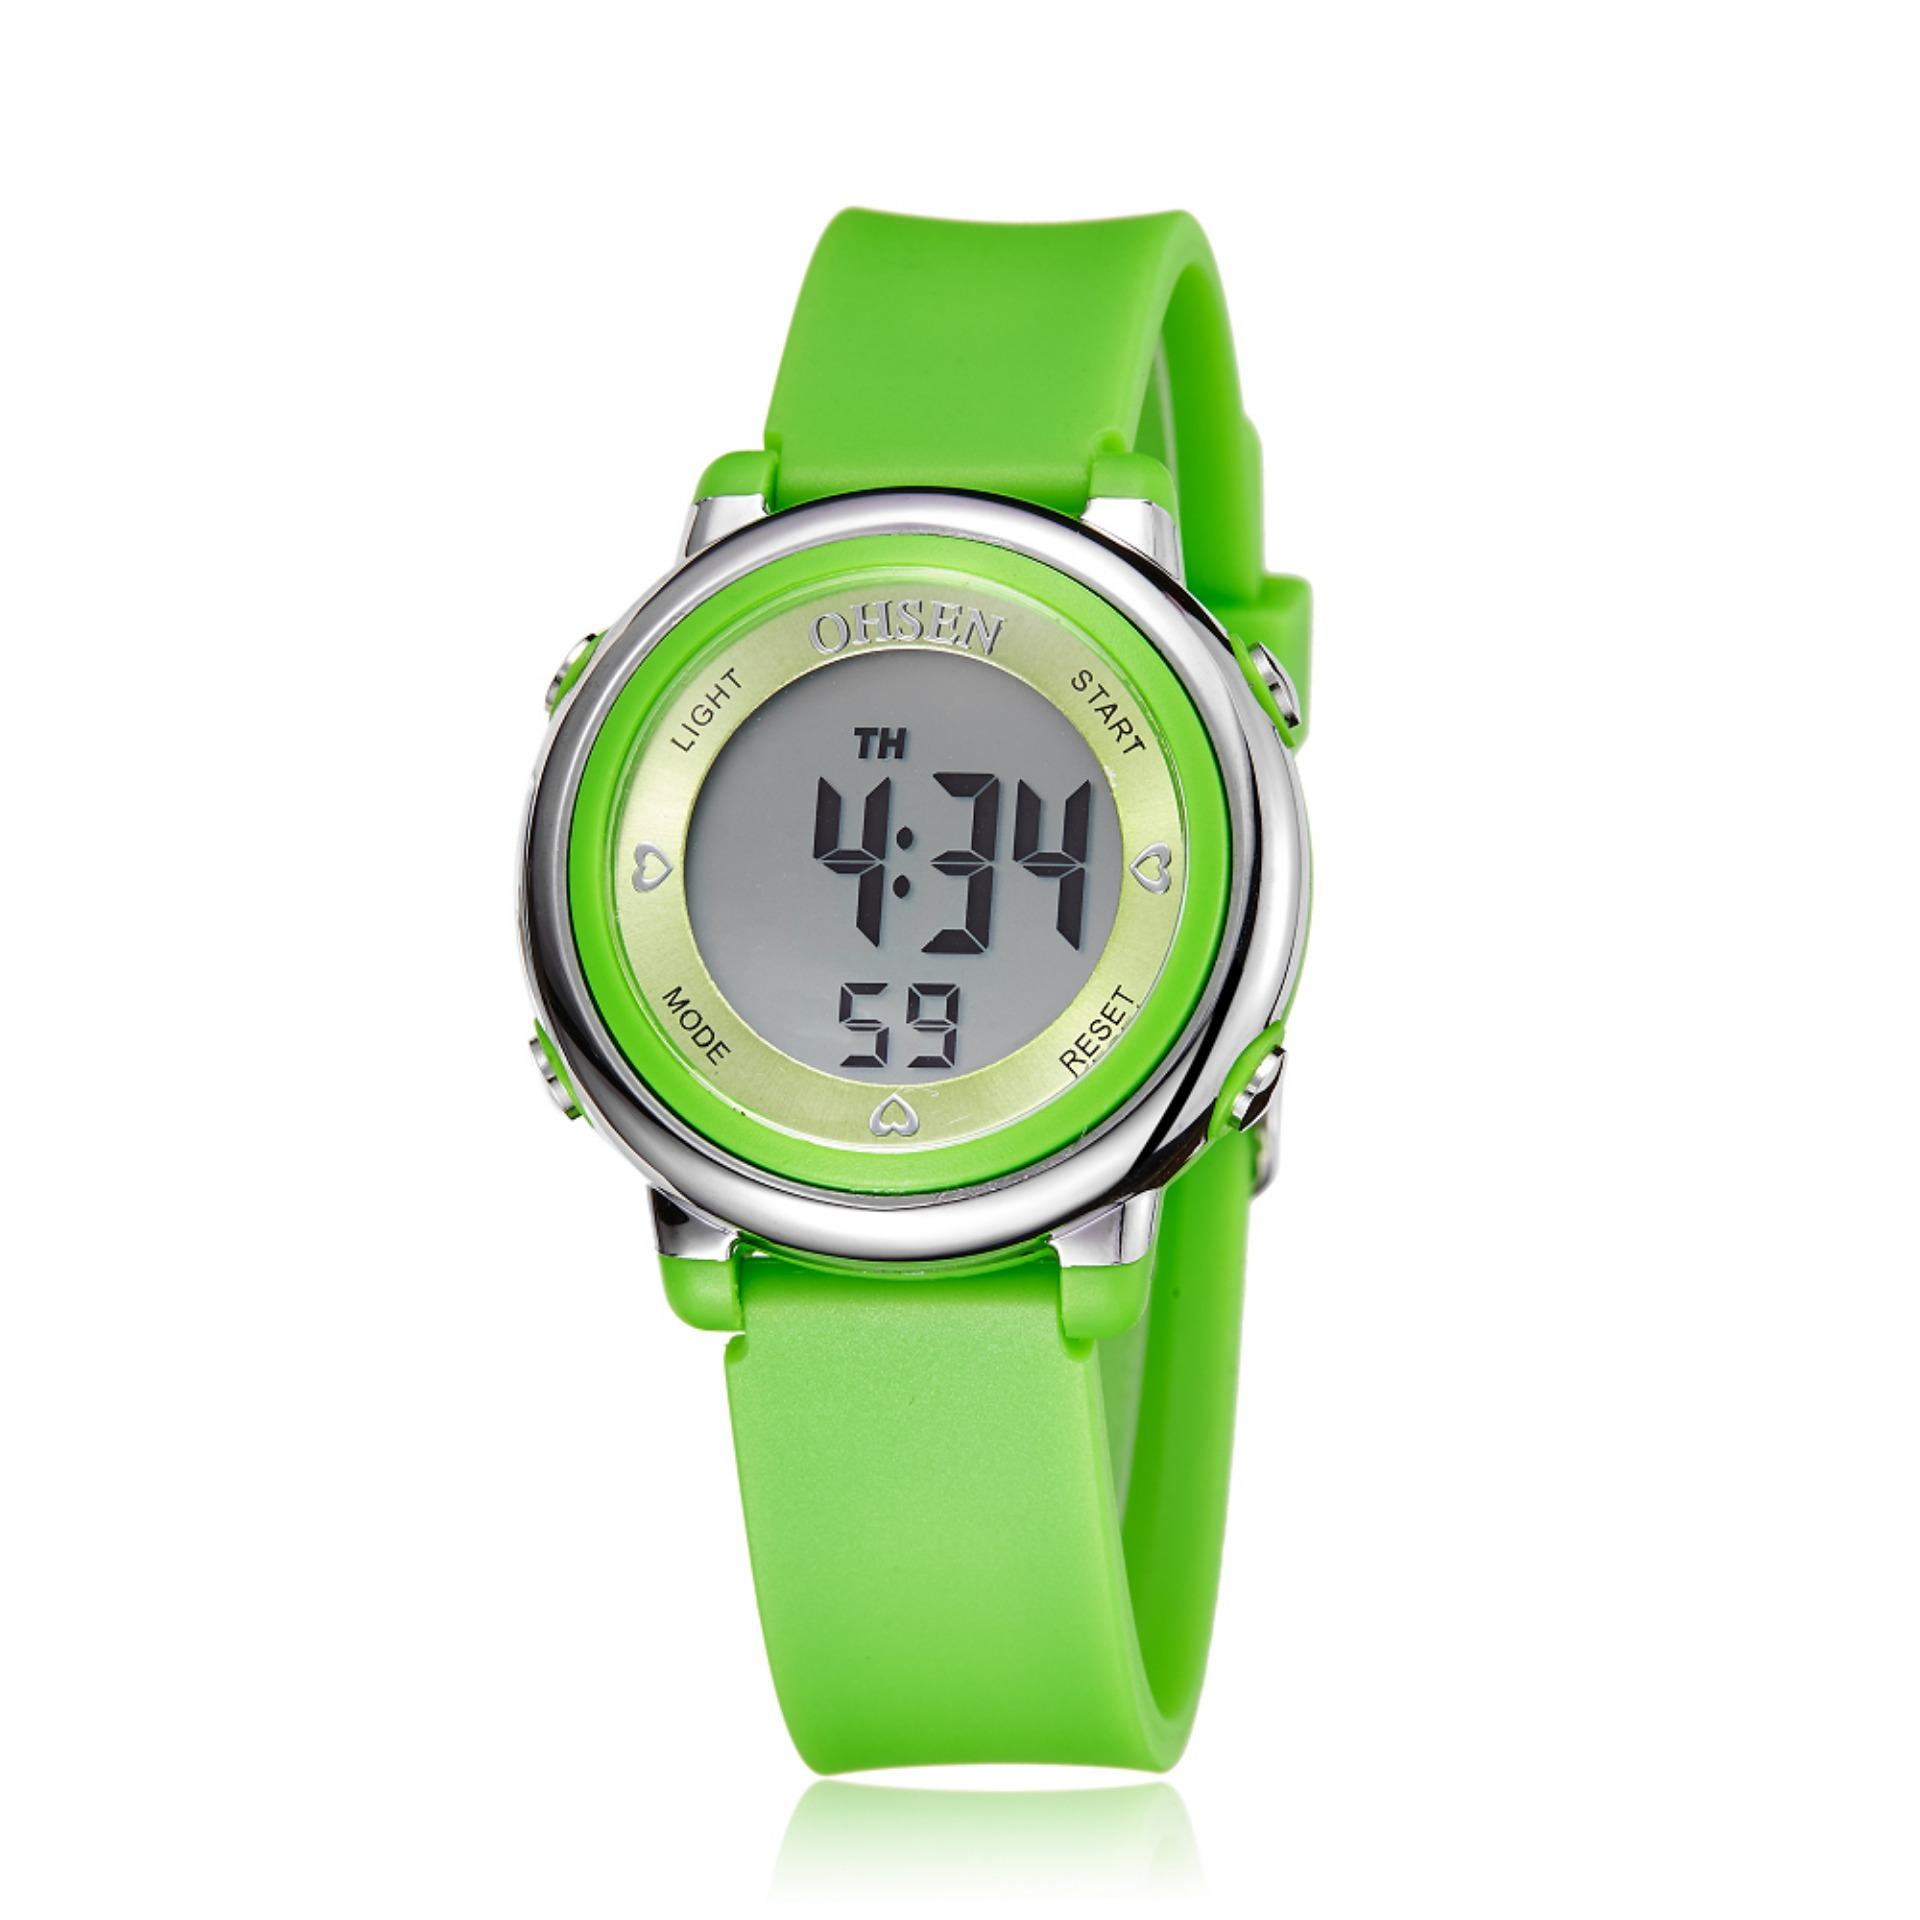 5d3d1ca24b4 Ohsen 1605 Multi-function Water Resistant Fashionable Sports Watch (Green)